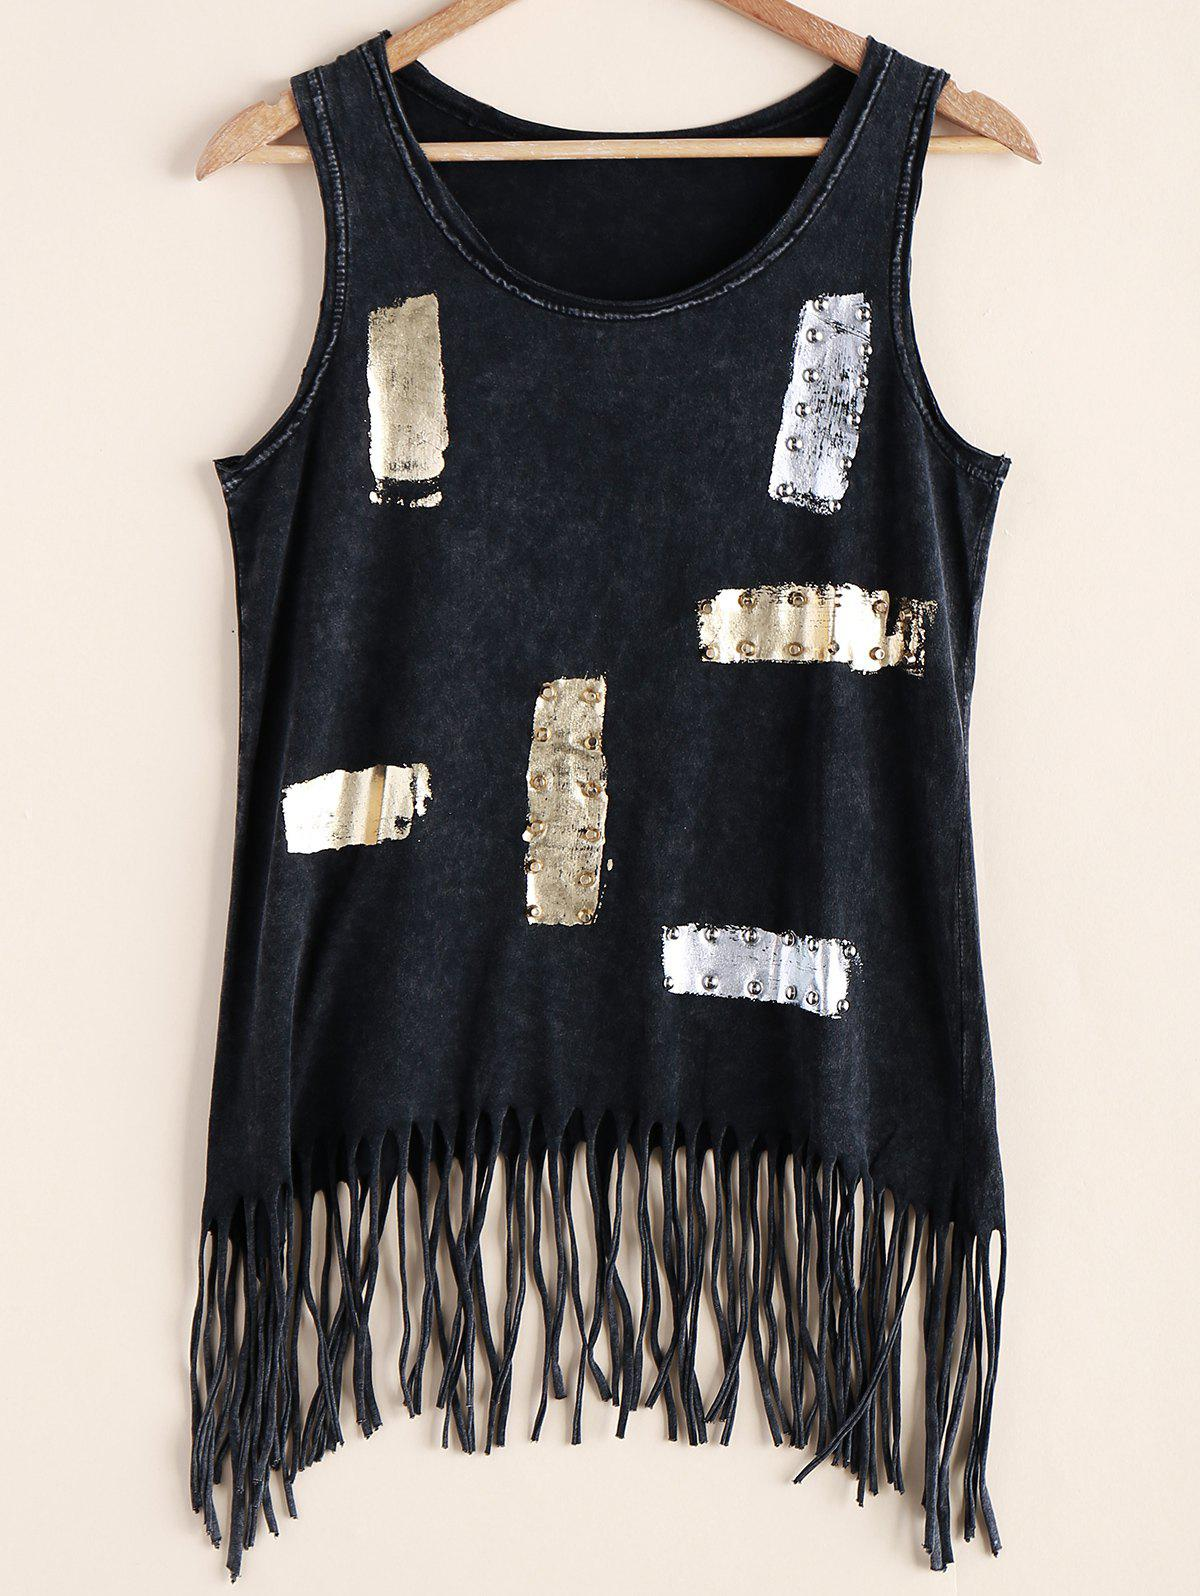 Trendy Fringed Sequined Rivet Decorated Tank Top For Women trendy beads anchor decorated bracelet for women